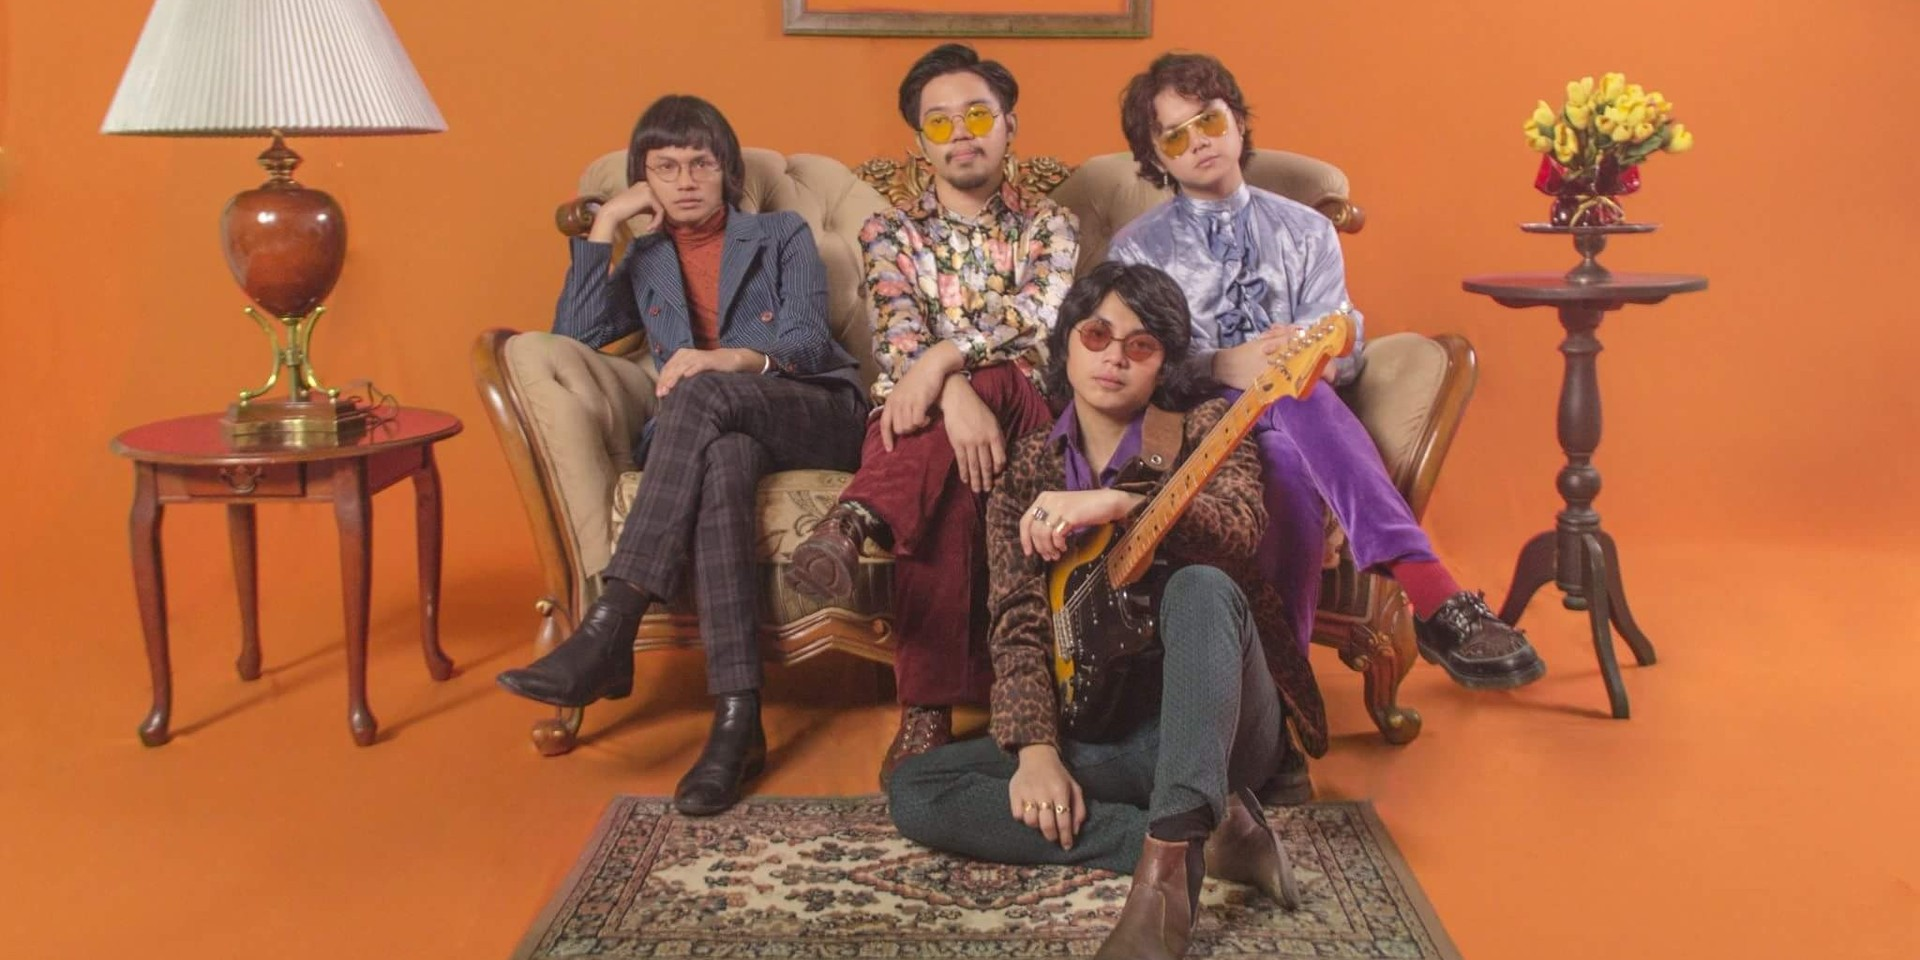 IV of Spades share the stage with David Foster on the latest episode of AirAsia RedTalks